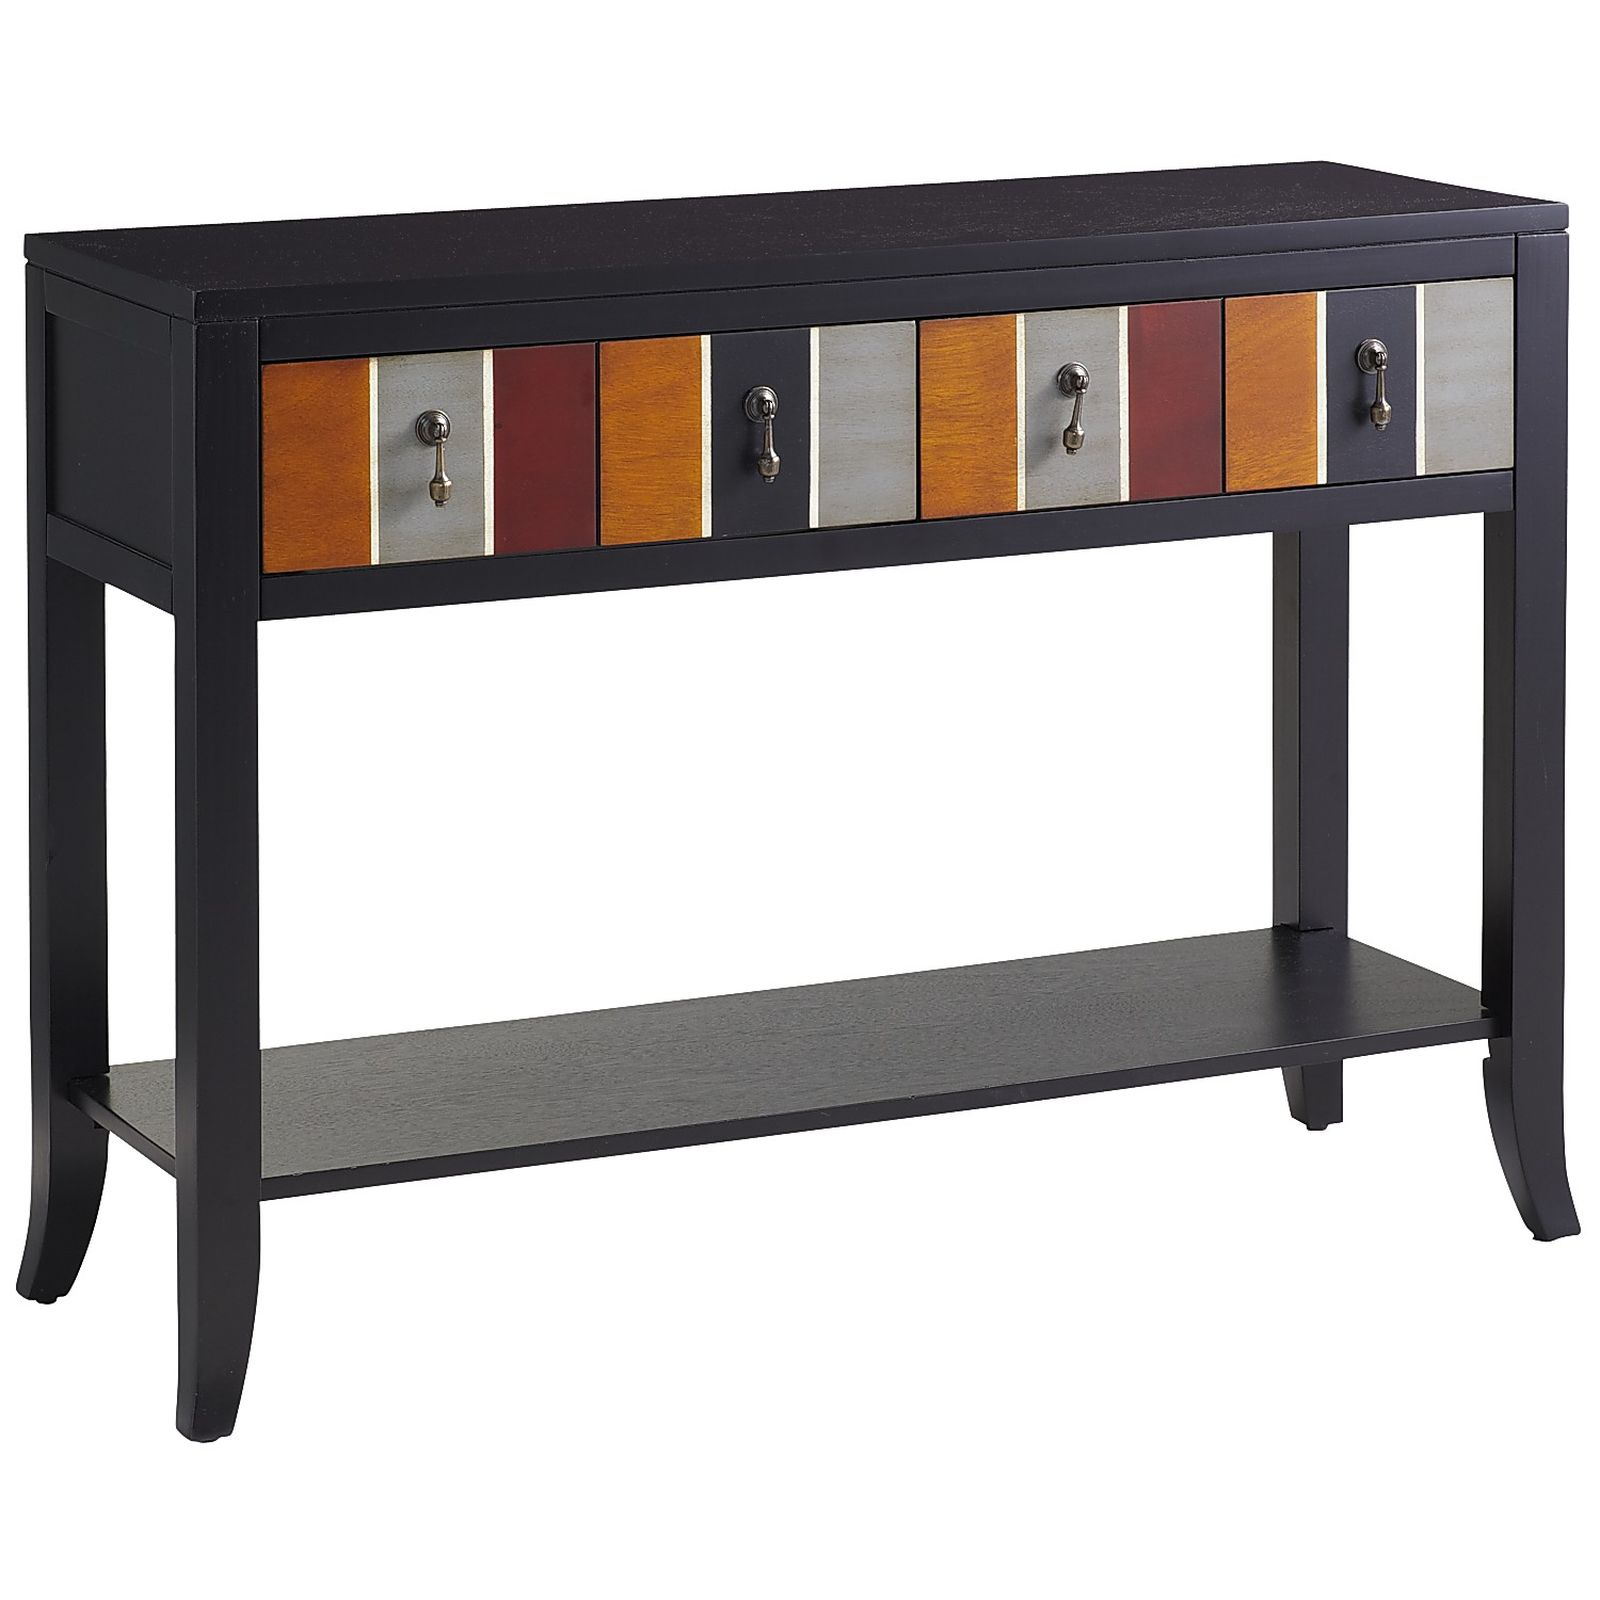 console table pier quentin and lincoln with plus anywhere together heera one accent full size metal patio tables bunnings garden settings marble side living room ikea tops plastic